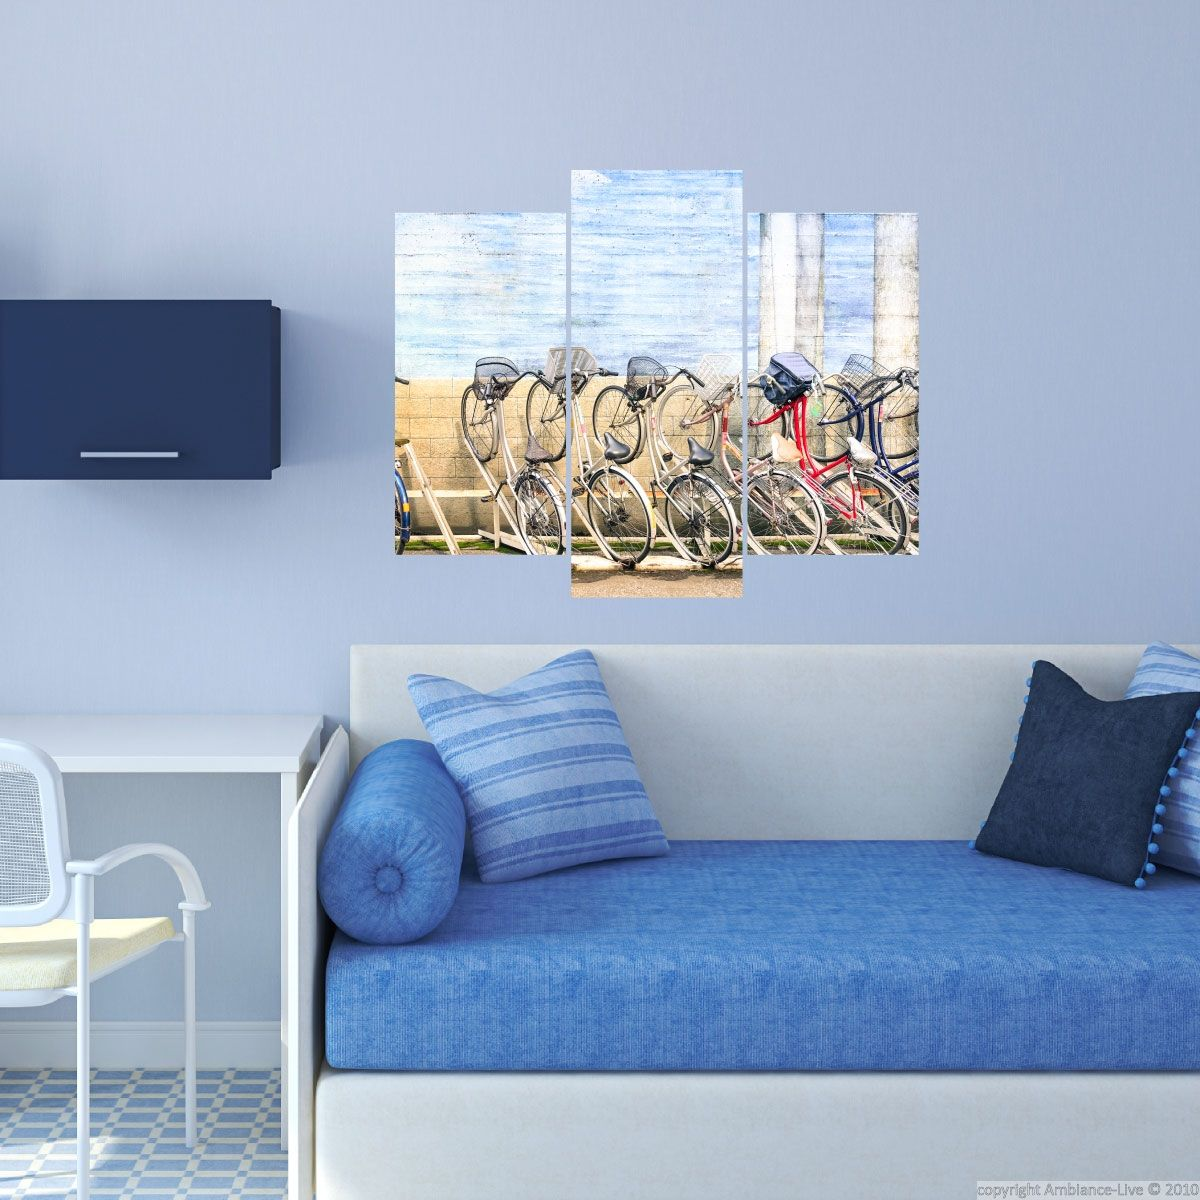 Ambiance Wall Stickers wall decals bikes – wall decals art and design vertical banners